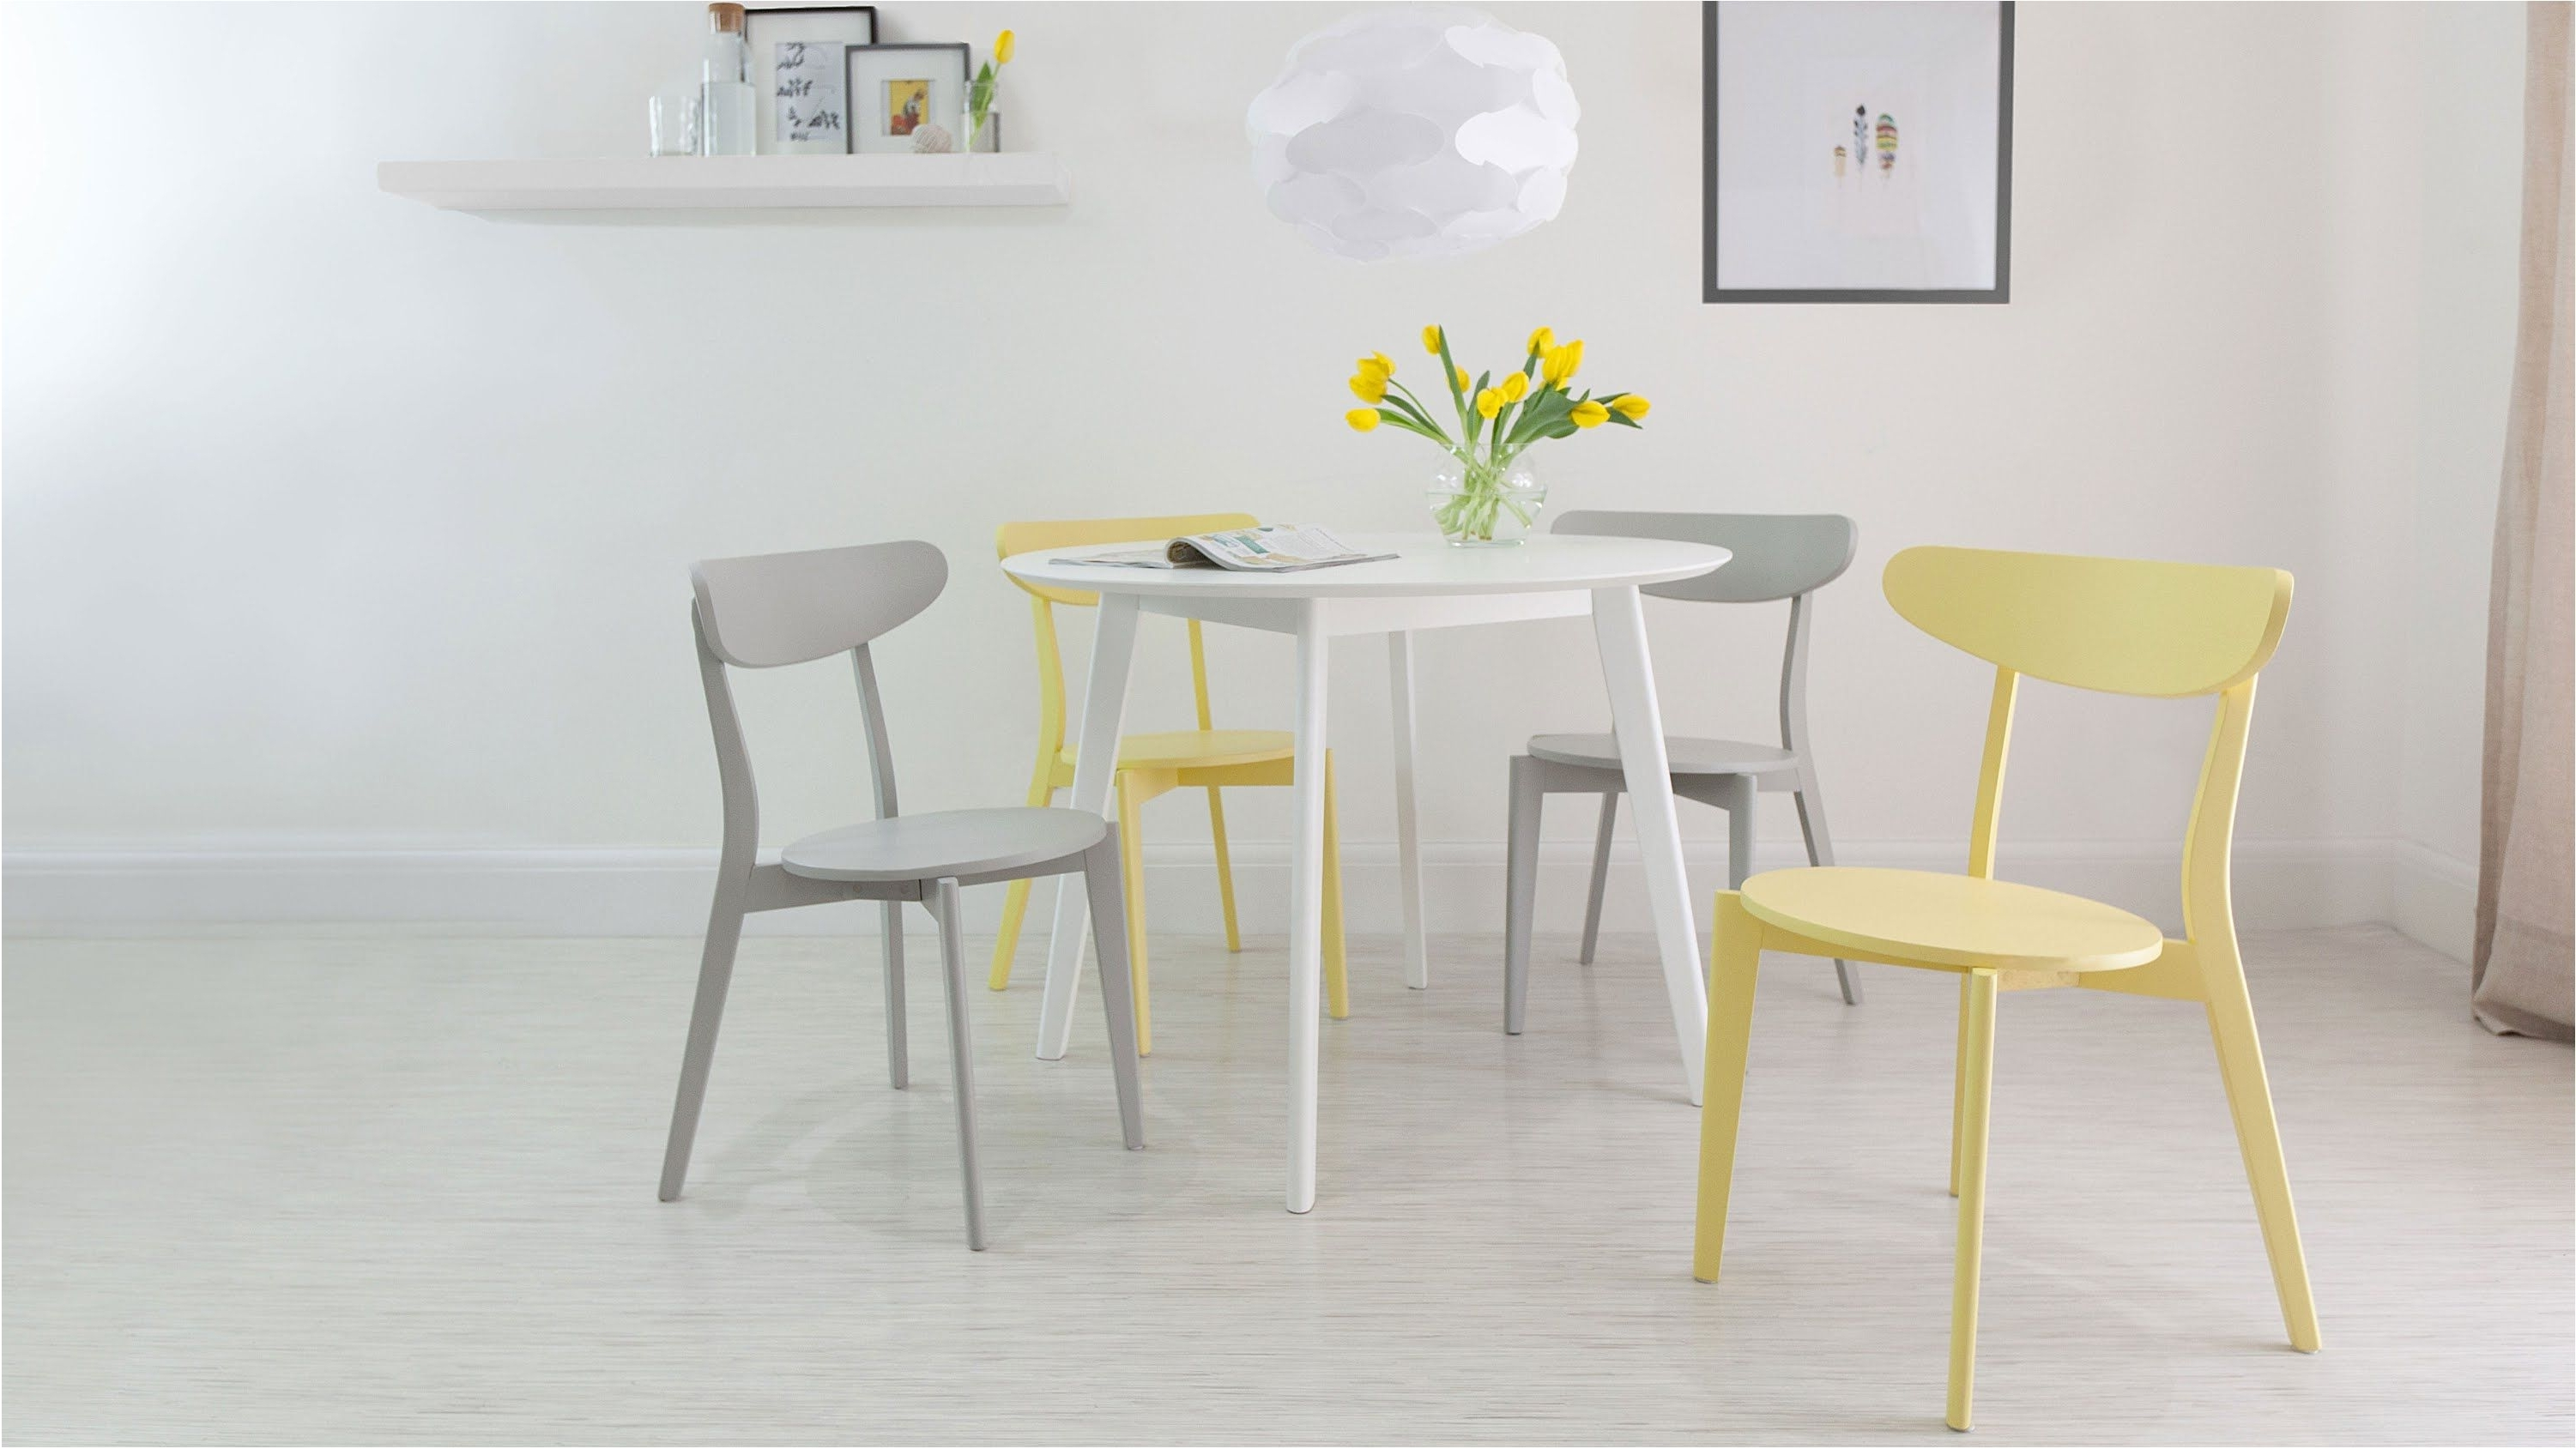 Most Up To Date Terrific Full White High Gloss Round Dining Table 4 Chairs Dining With Round High Gloss Dining Tables (View 12 of 25)